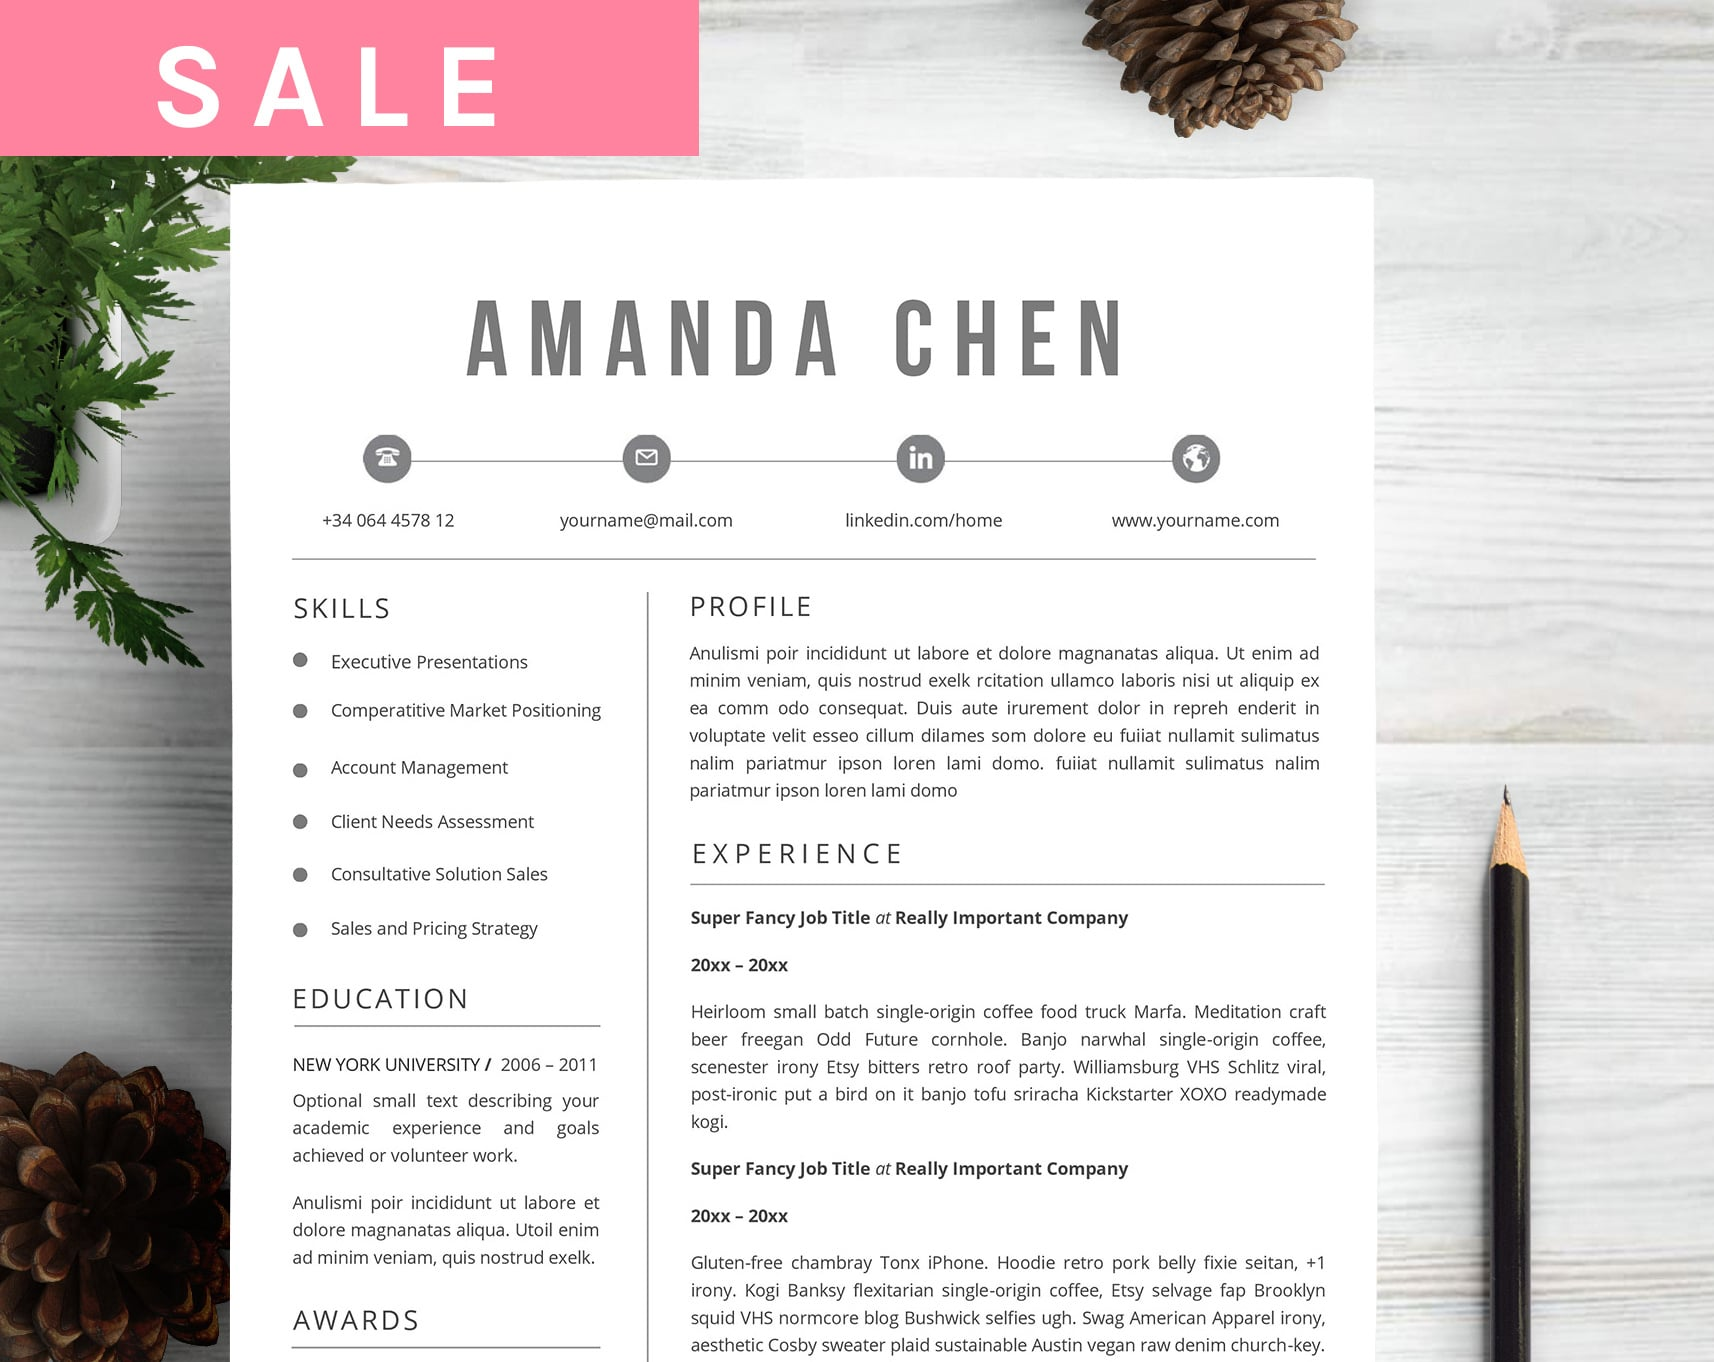 6 Best Clean Resume CV Templates in 2020 - Untitled 1 1